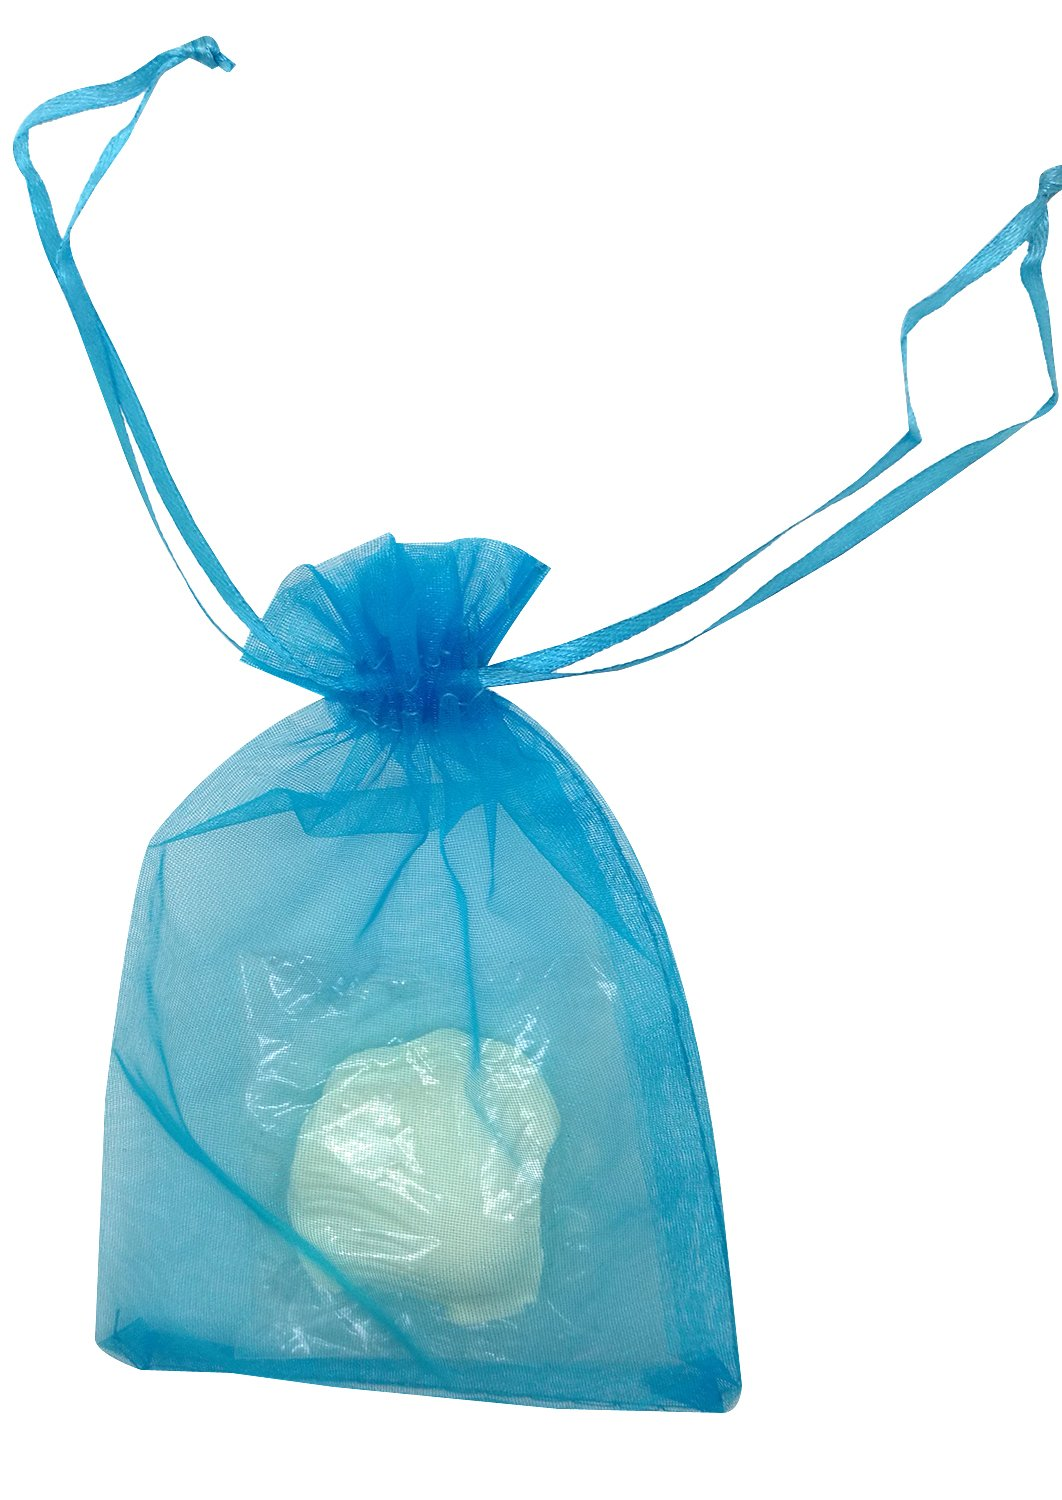 SUNGULF 100pcs Organza Pouch Bag Drawstring 4x6'' 10x15cm Strong Gift Candy Bag Jewelry Party Wedding Favor (Turquoise)